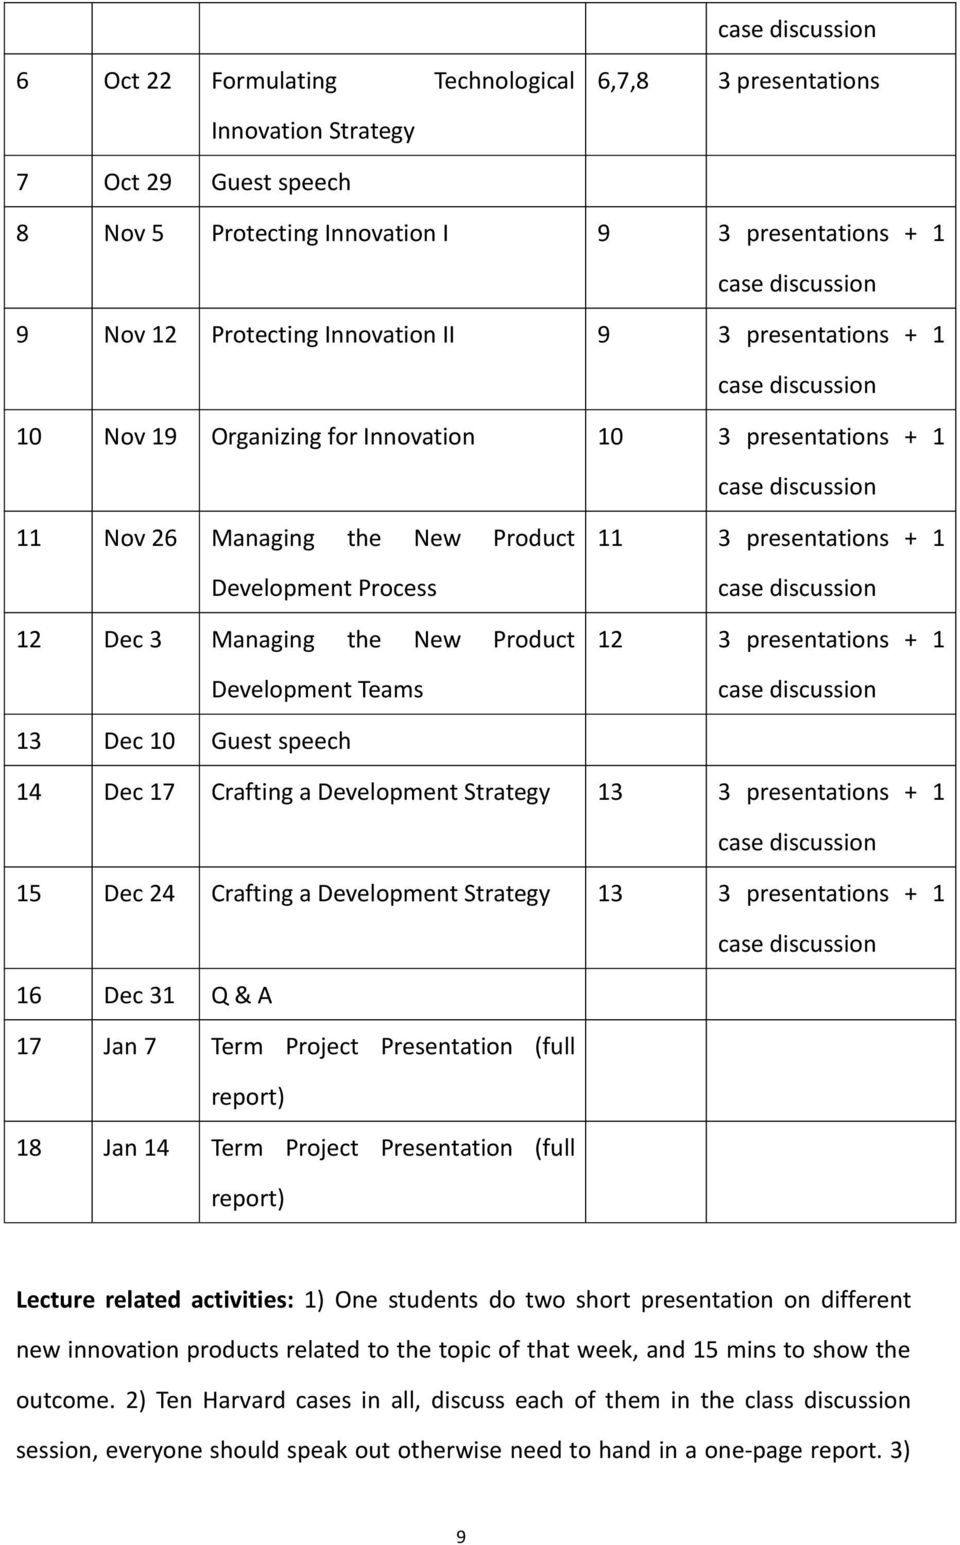 presentations + 1 12 3 presentations + 1 13 Dec 10 Guest speech 14 Dec 17 Crafting a Development Strategy 13 3 presentations + 1 15 Dec 24 Crafting a Development Strategy 13 3 presentations + 1 16